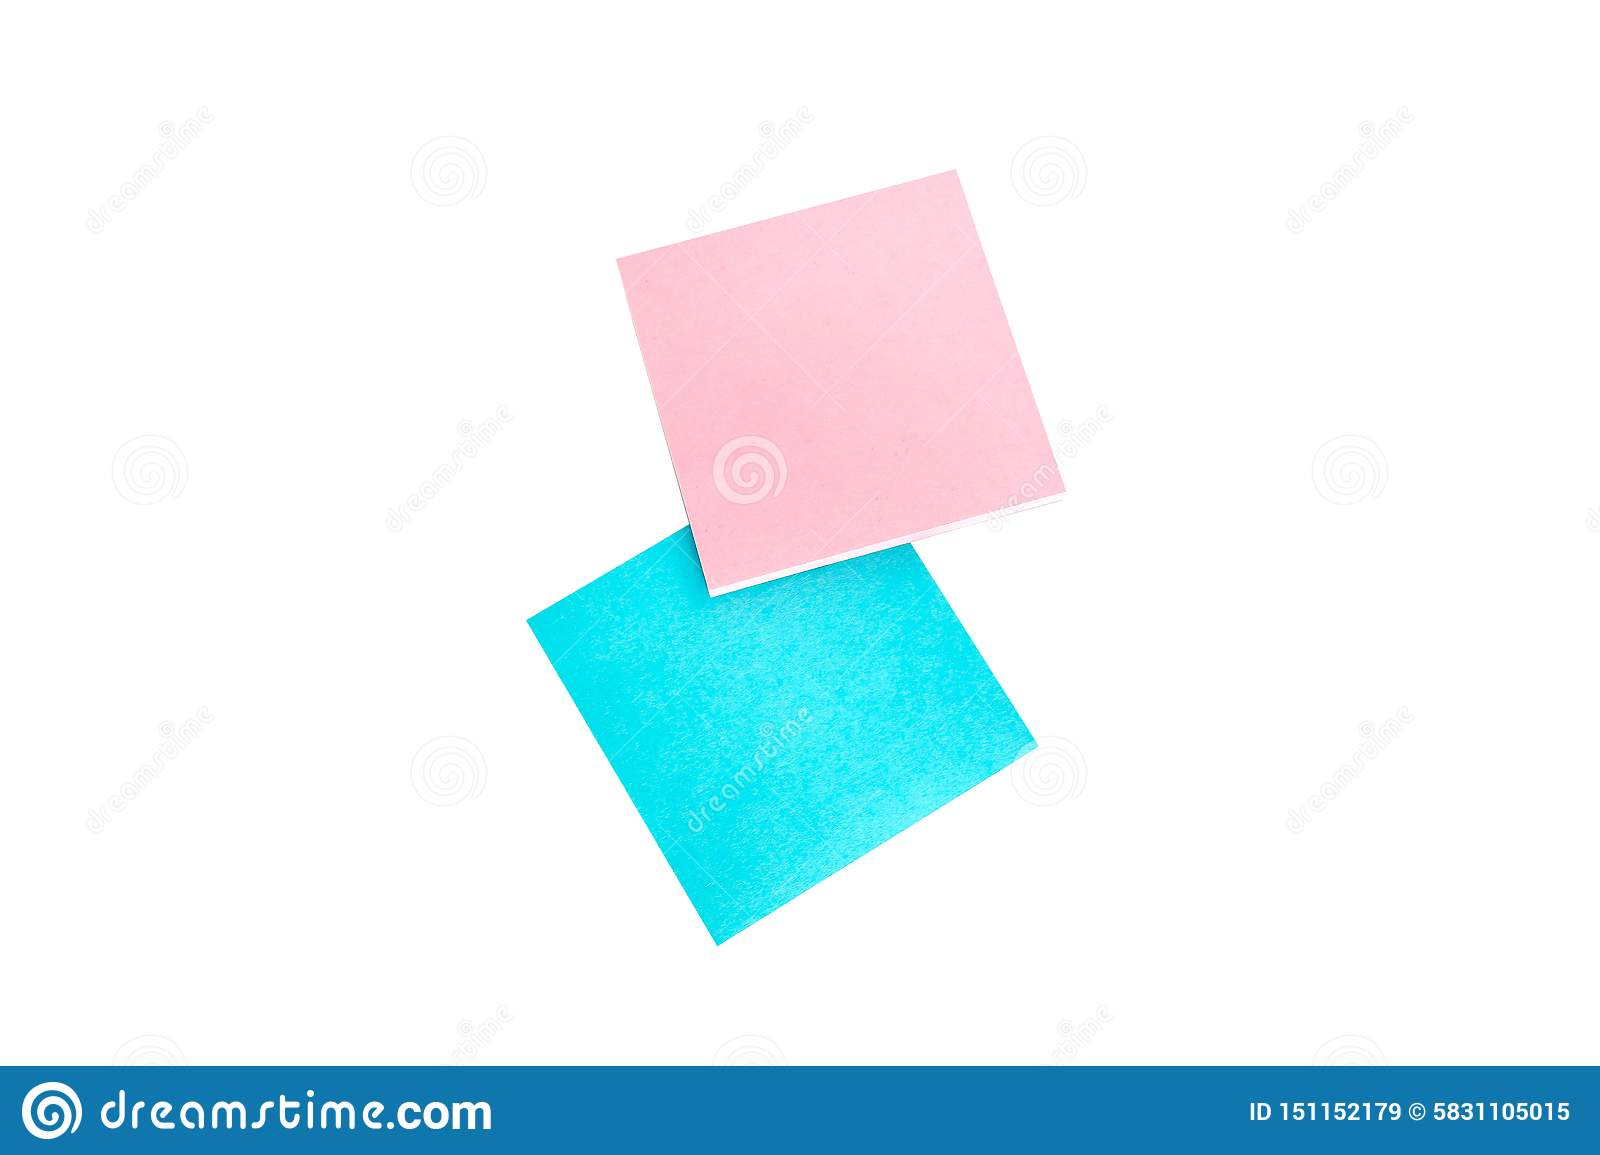 Post note isolated on a white background